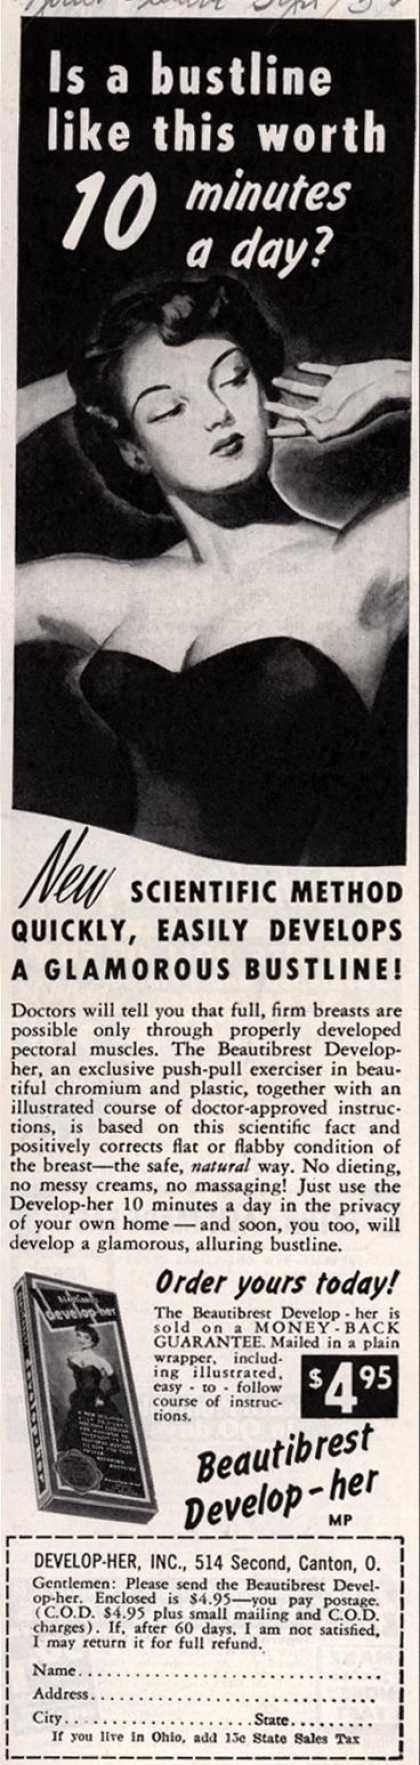 Develop-Her, Incorporated's Beautibrest Develop-her – Is a bustline like this worth 10 minutes a day? (1950)